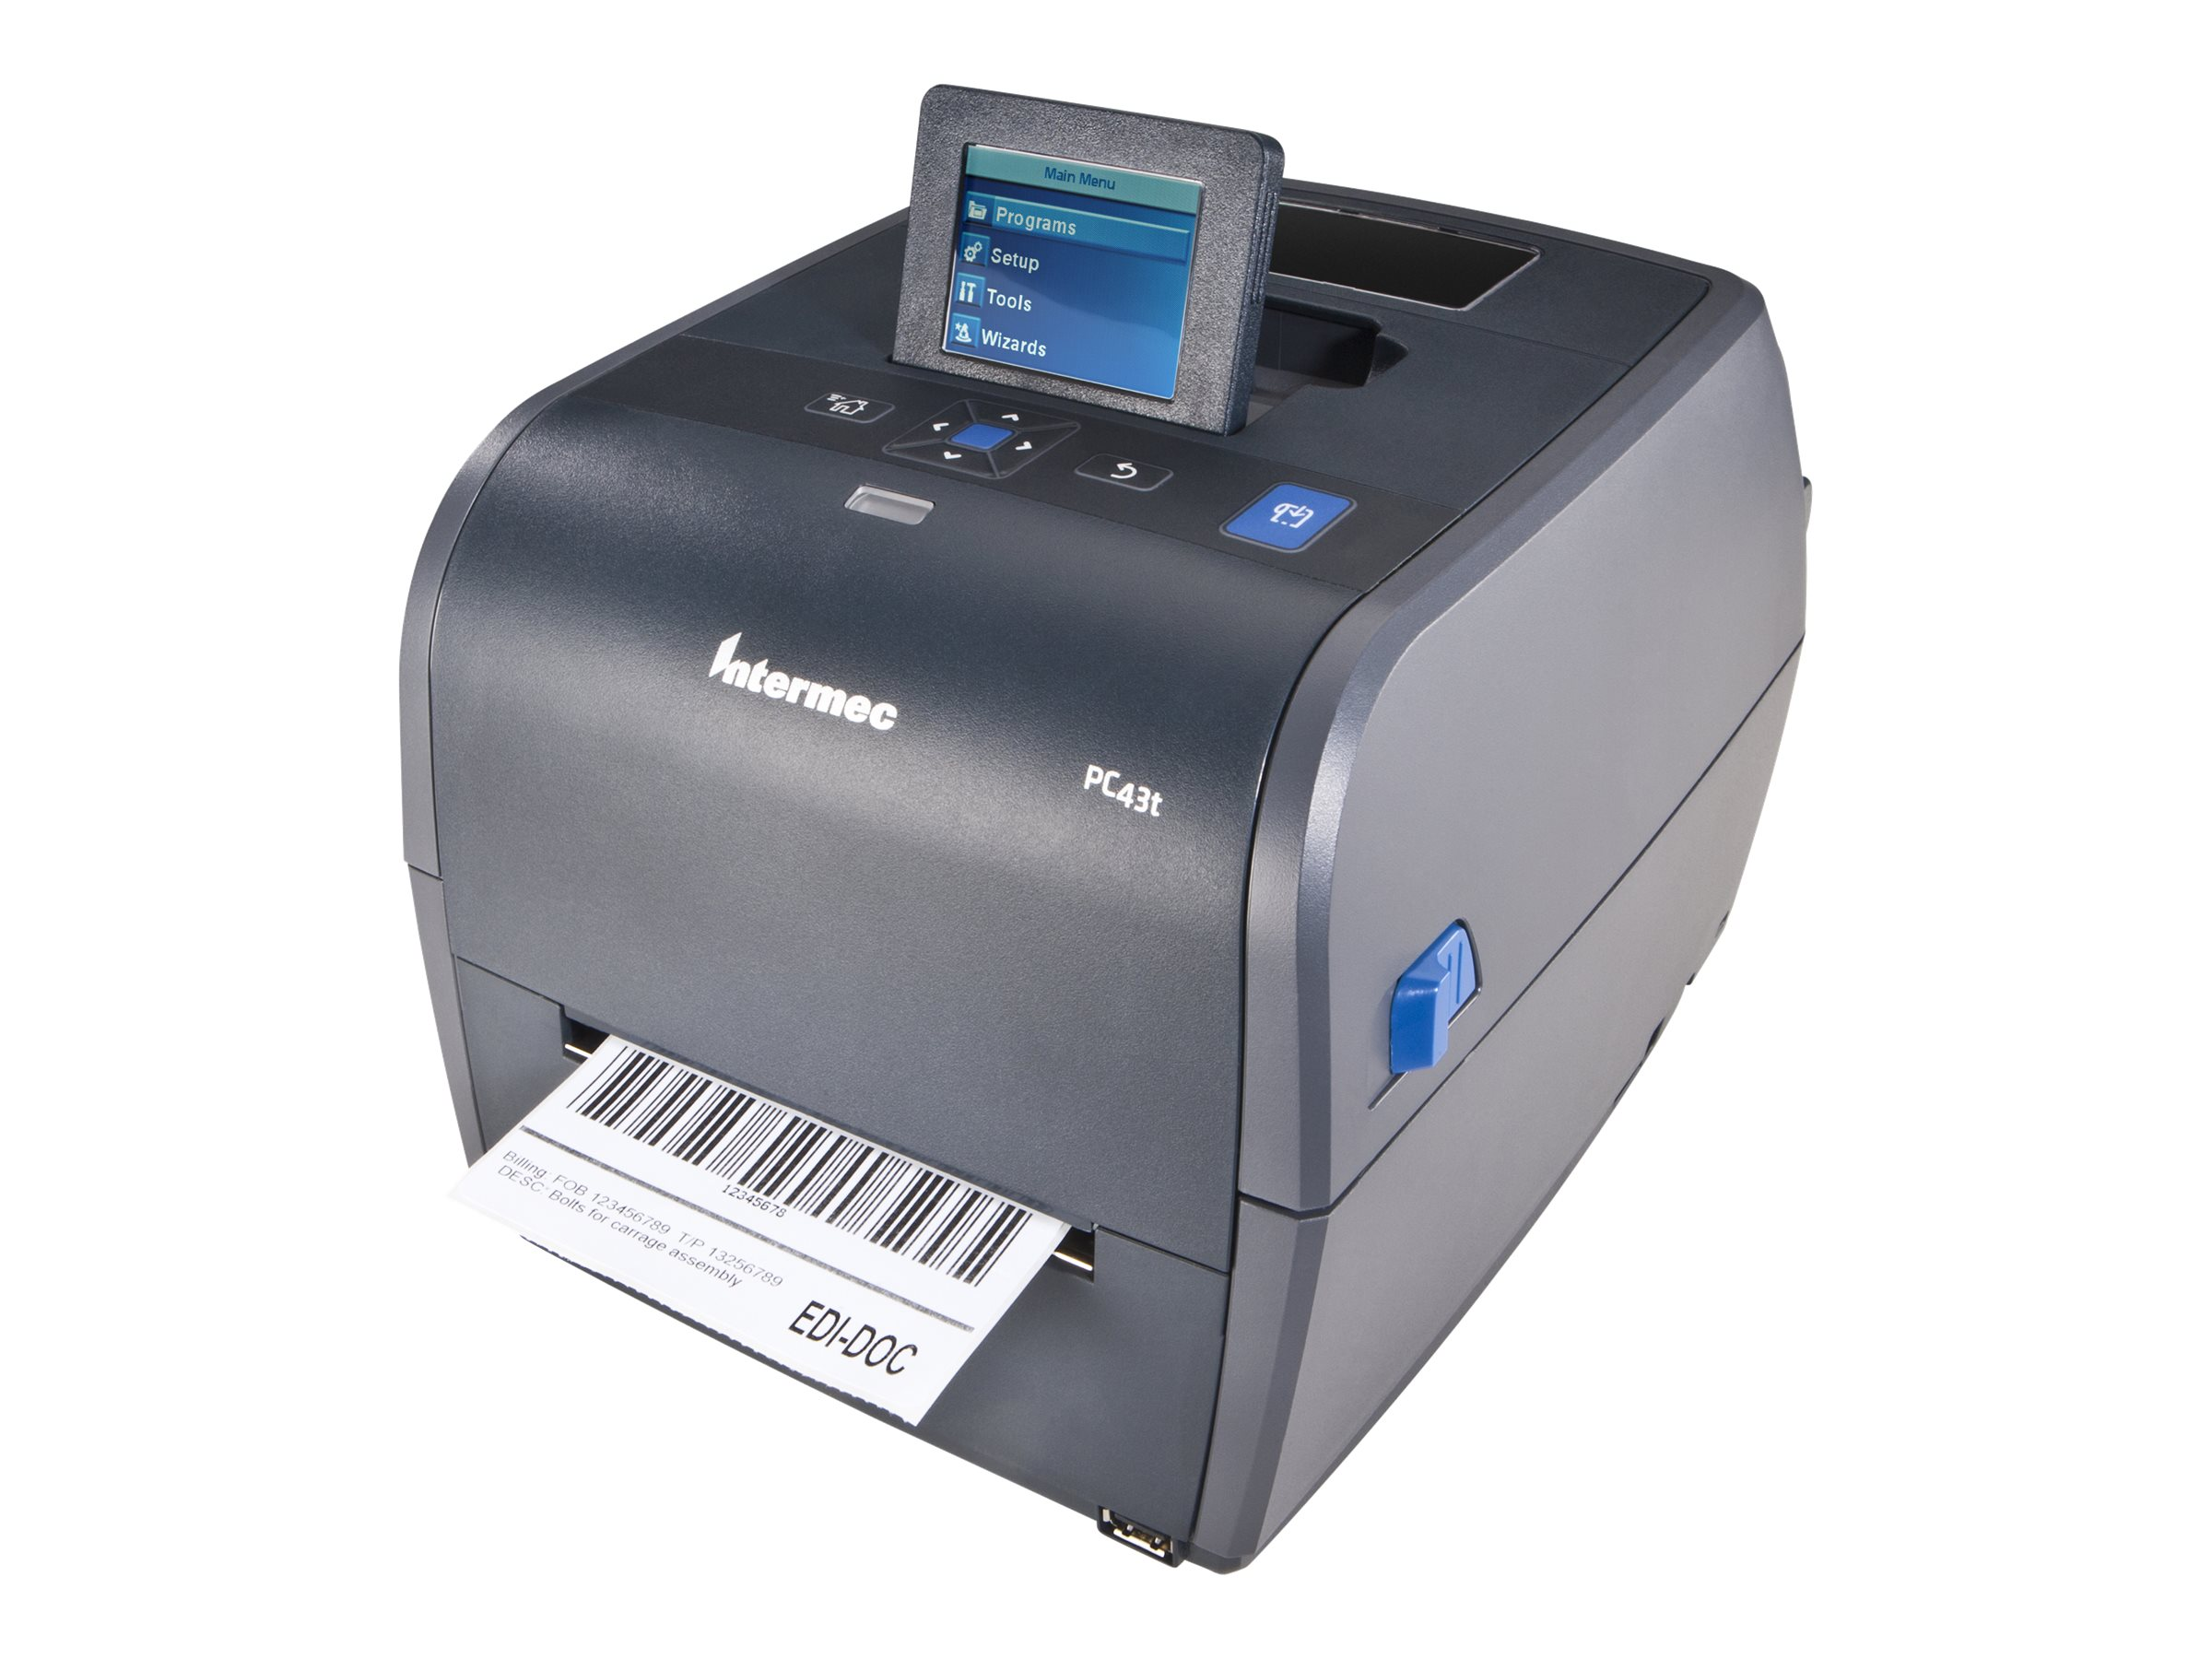 Honeywell PC43D 4 Direct Thermal RFID Printer